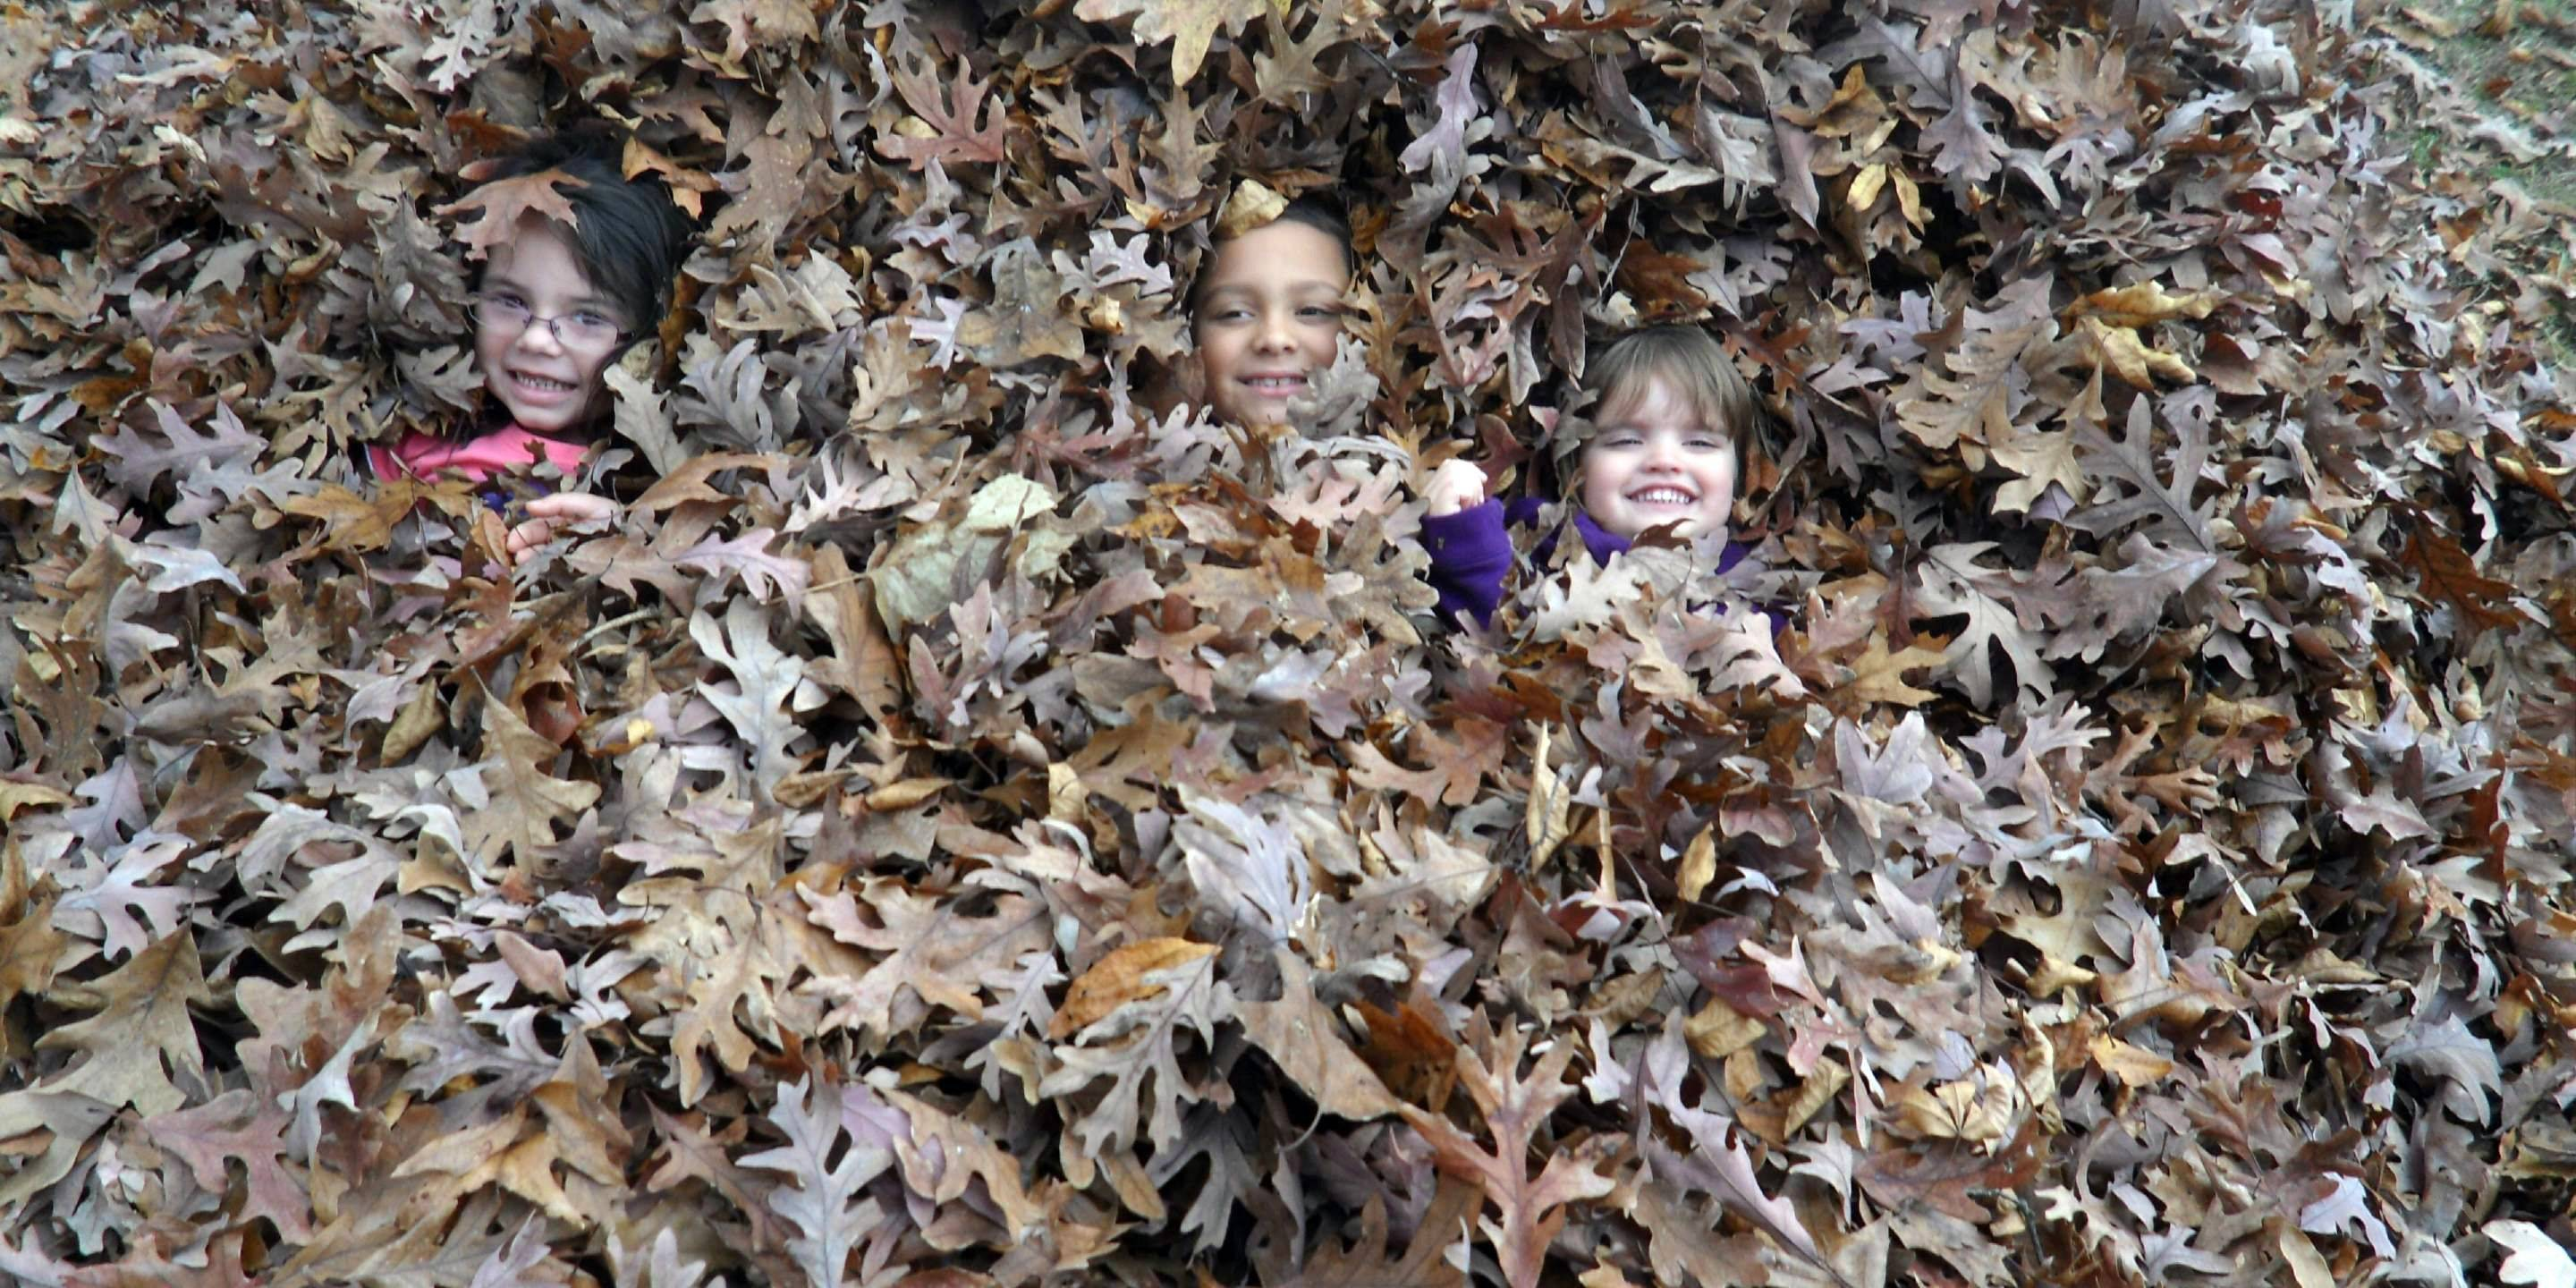 This photo was taken of my oldest three of five grandkids playing and hiding in a large backyard pile of leaves at my daughter's home in Simpsonville, S.C. I took my kids and grandkids from Illinois to visit their sister and her family for Thanksgiving.